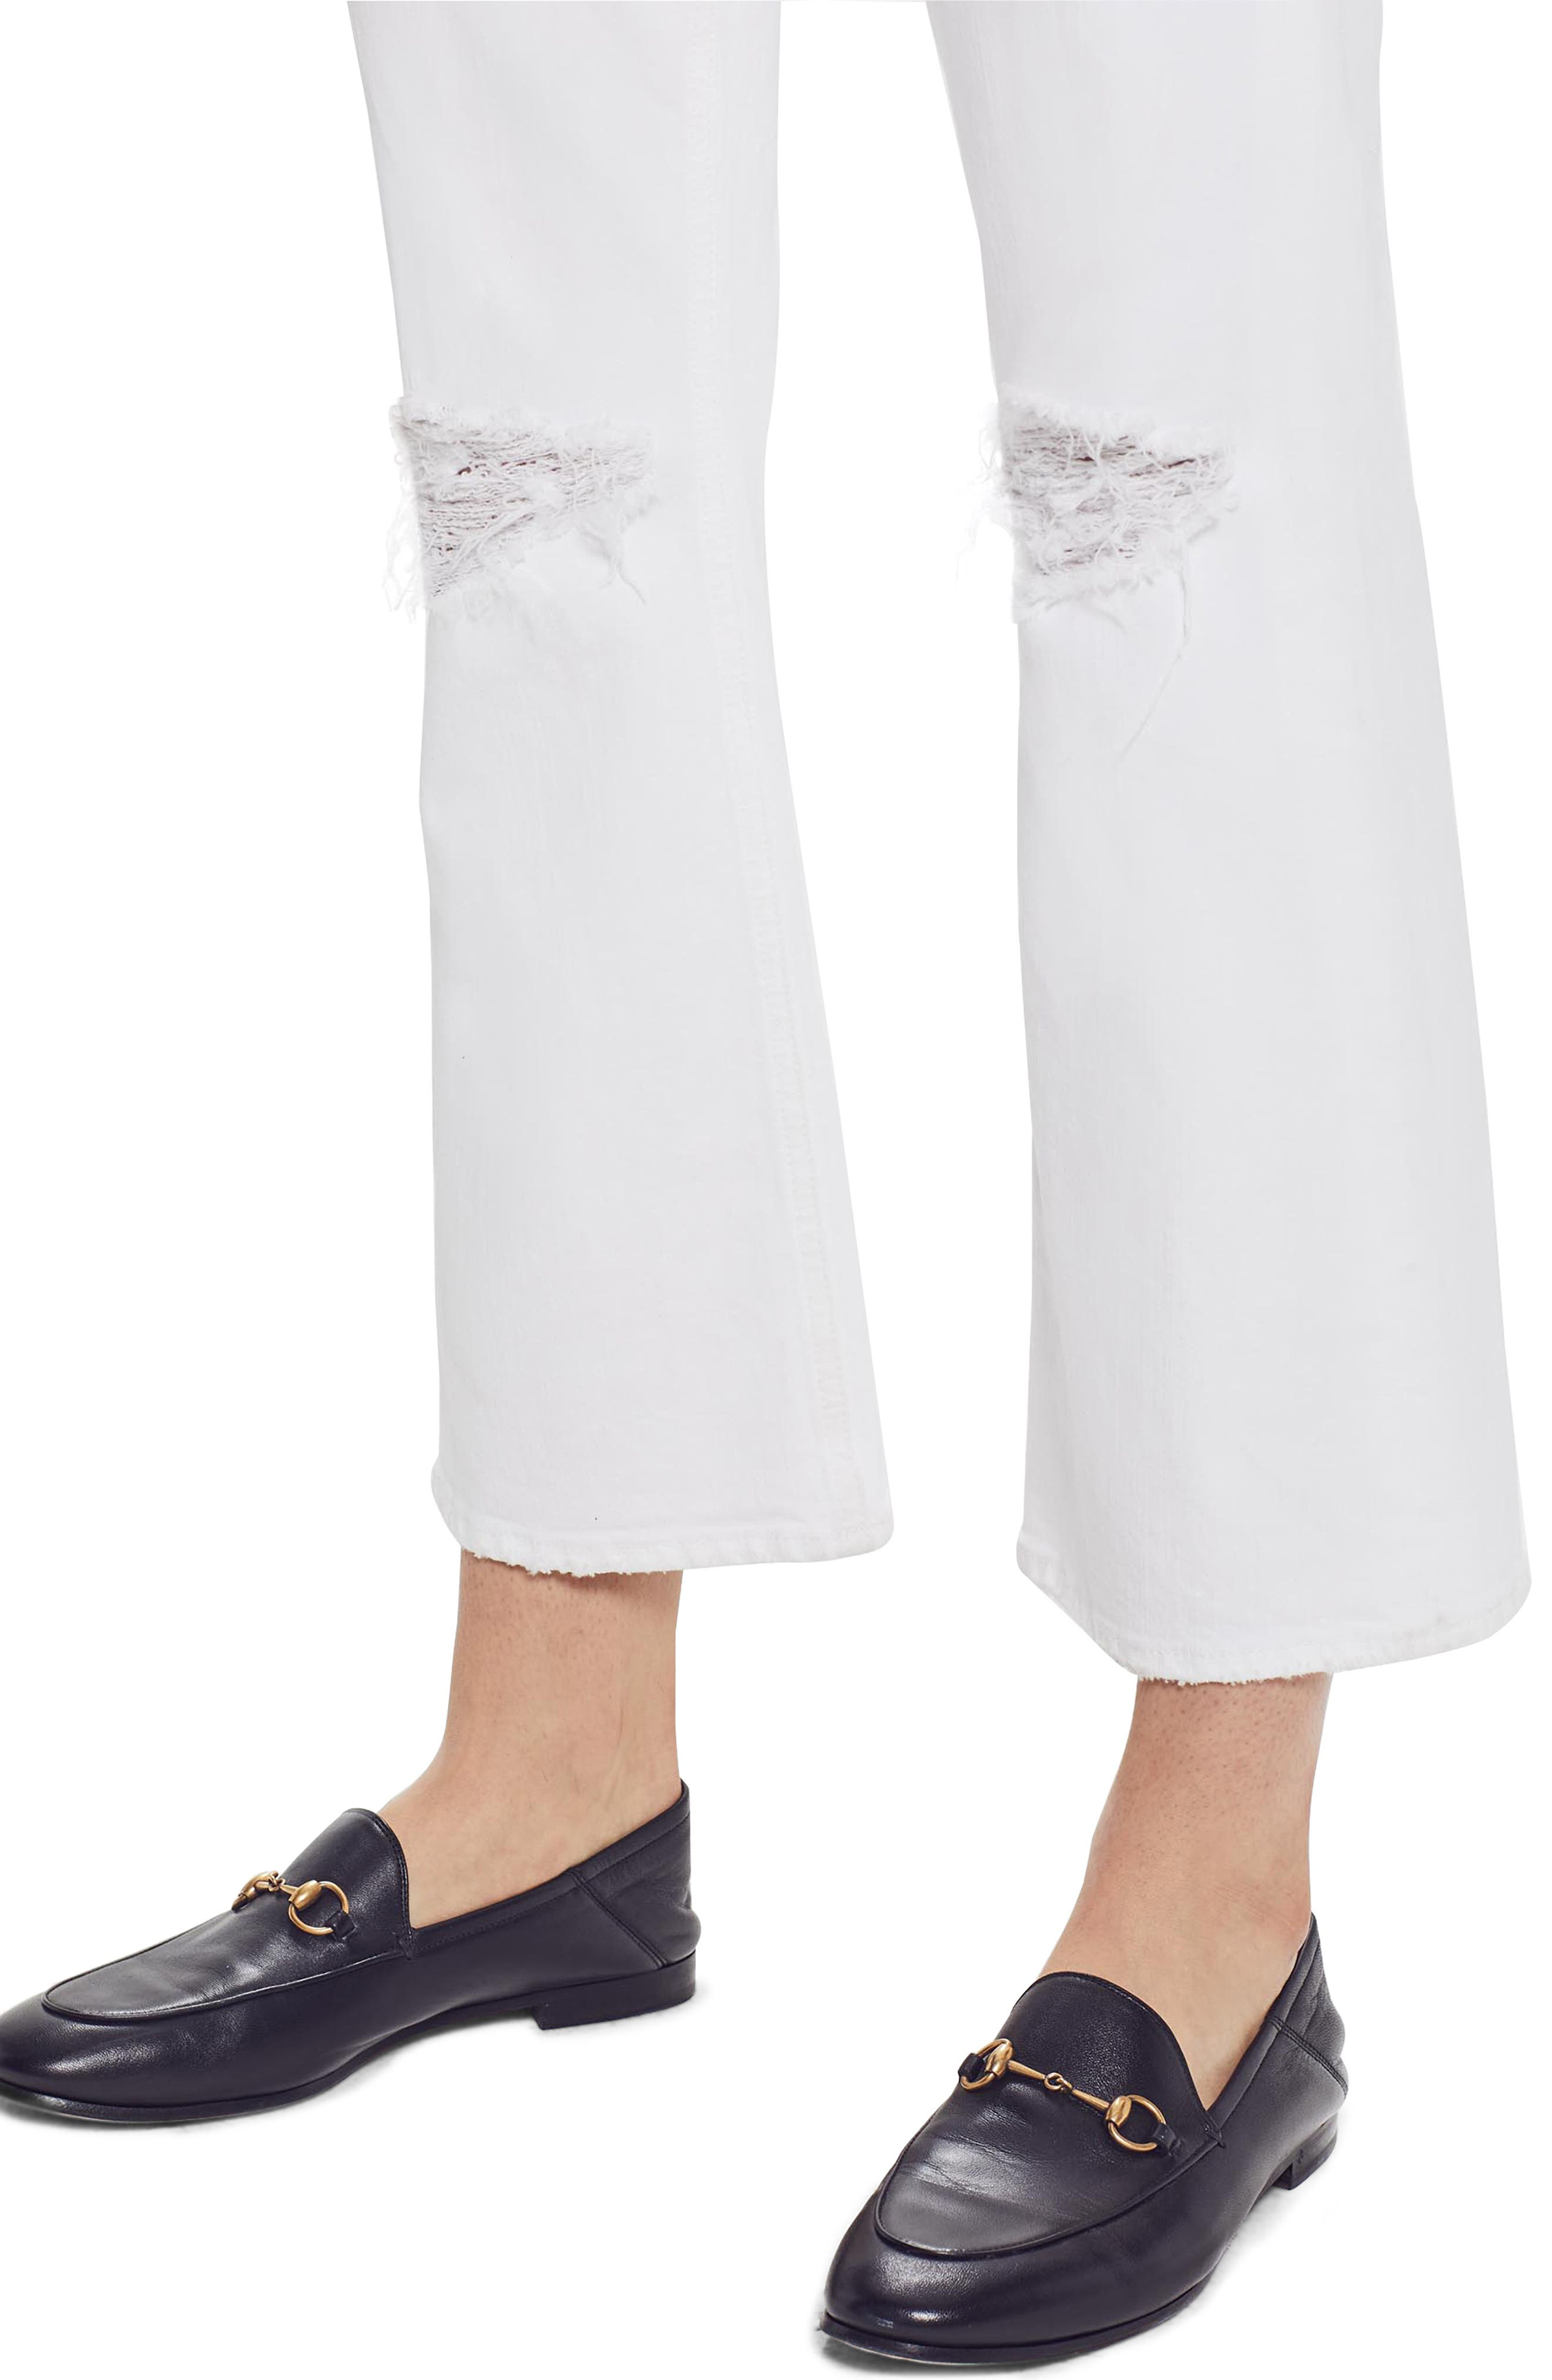 MOTHER, The Tripper High Waist Crop Bootcut Jeans, Alternate thumbnail 4, color, ALMOST INNOCENT